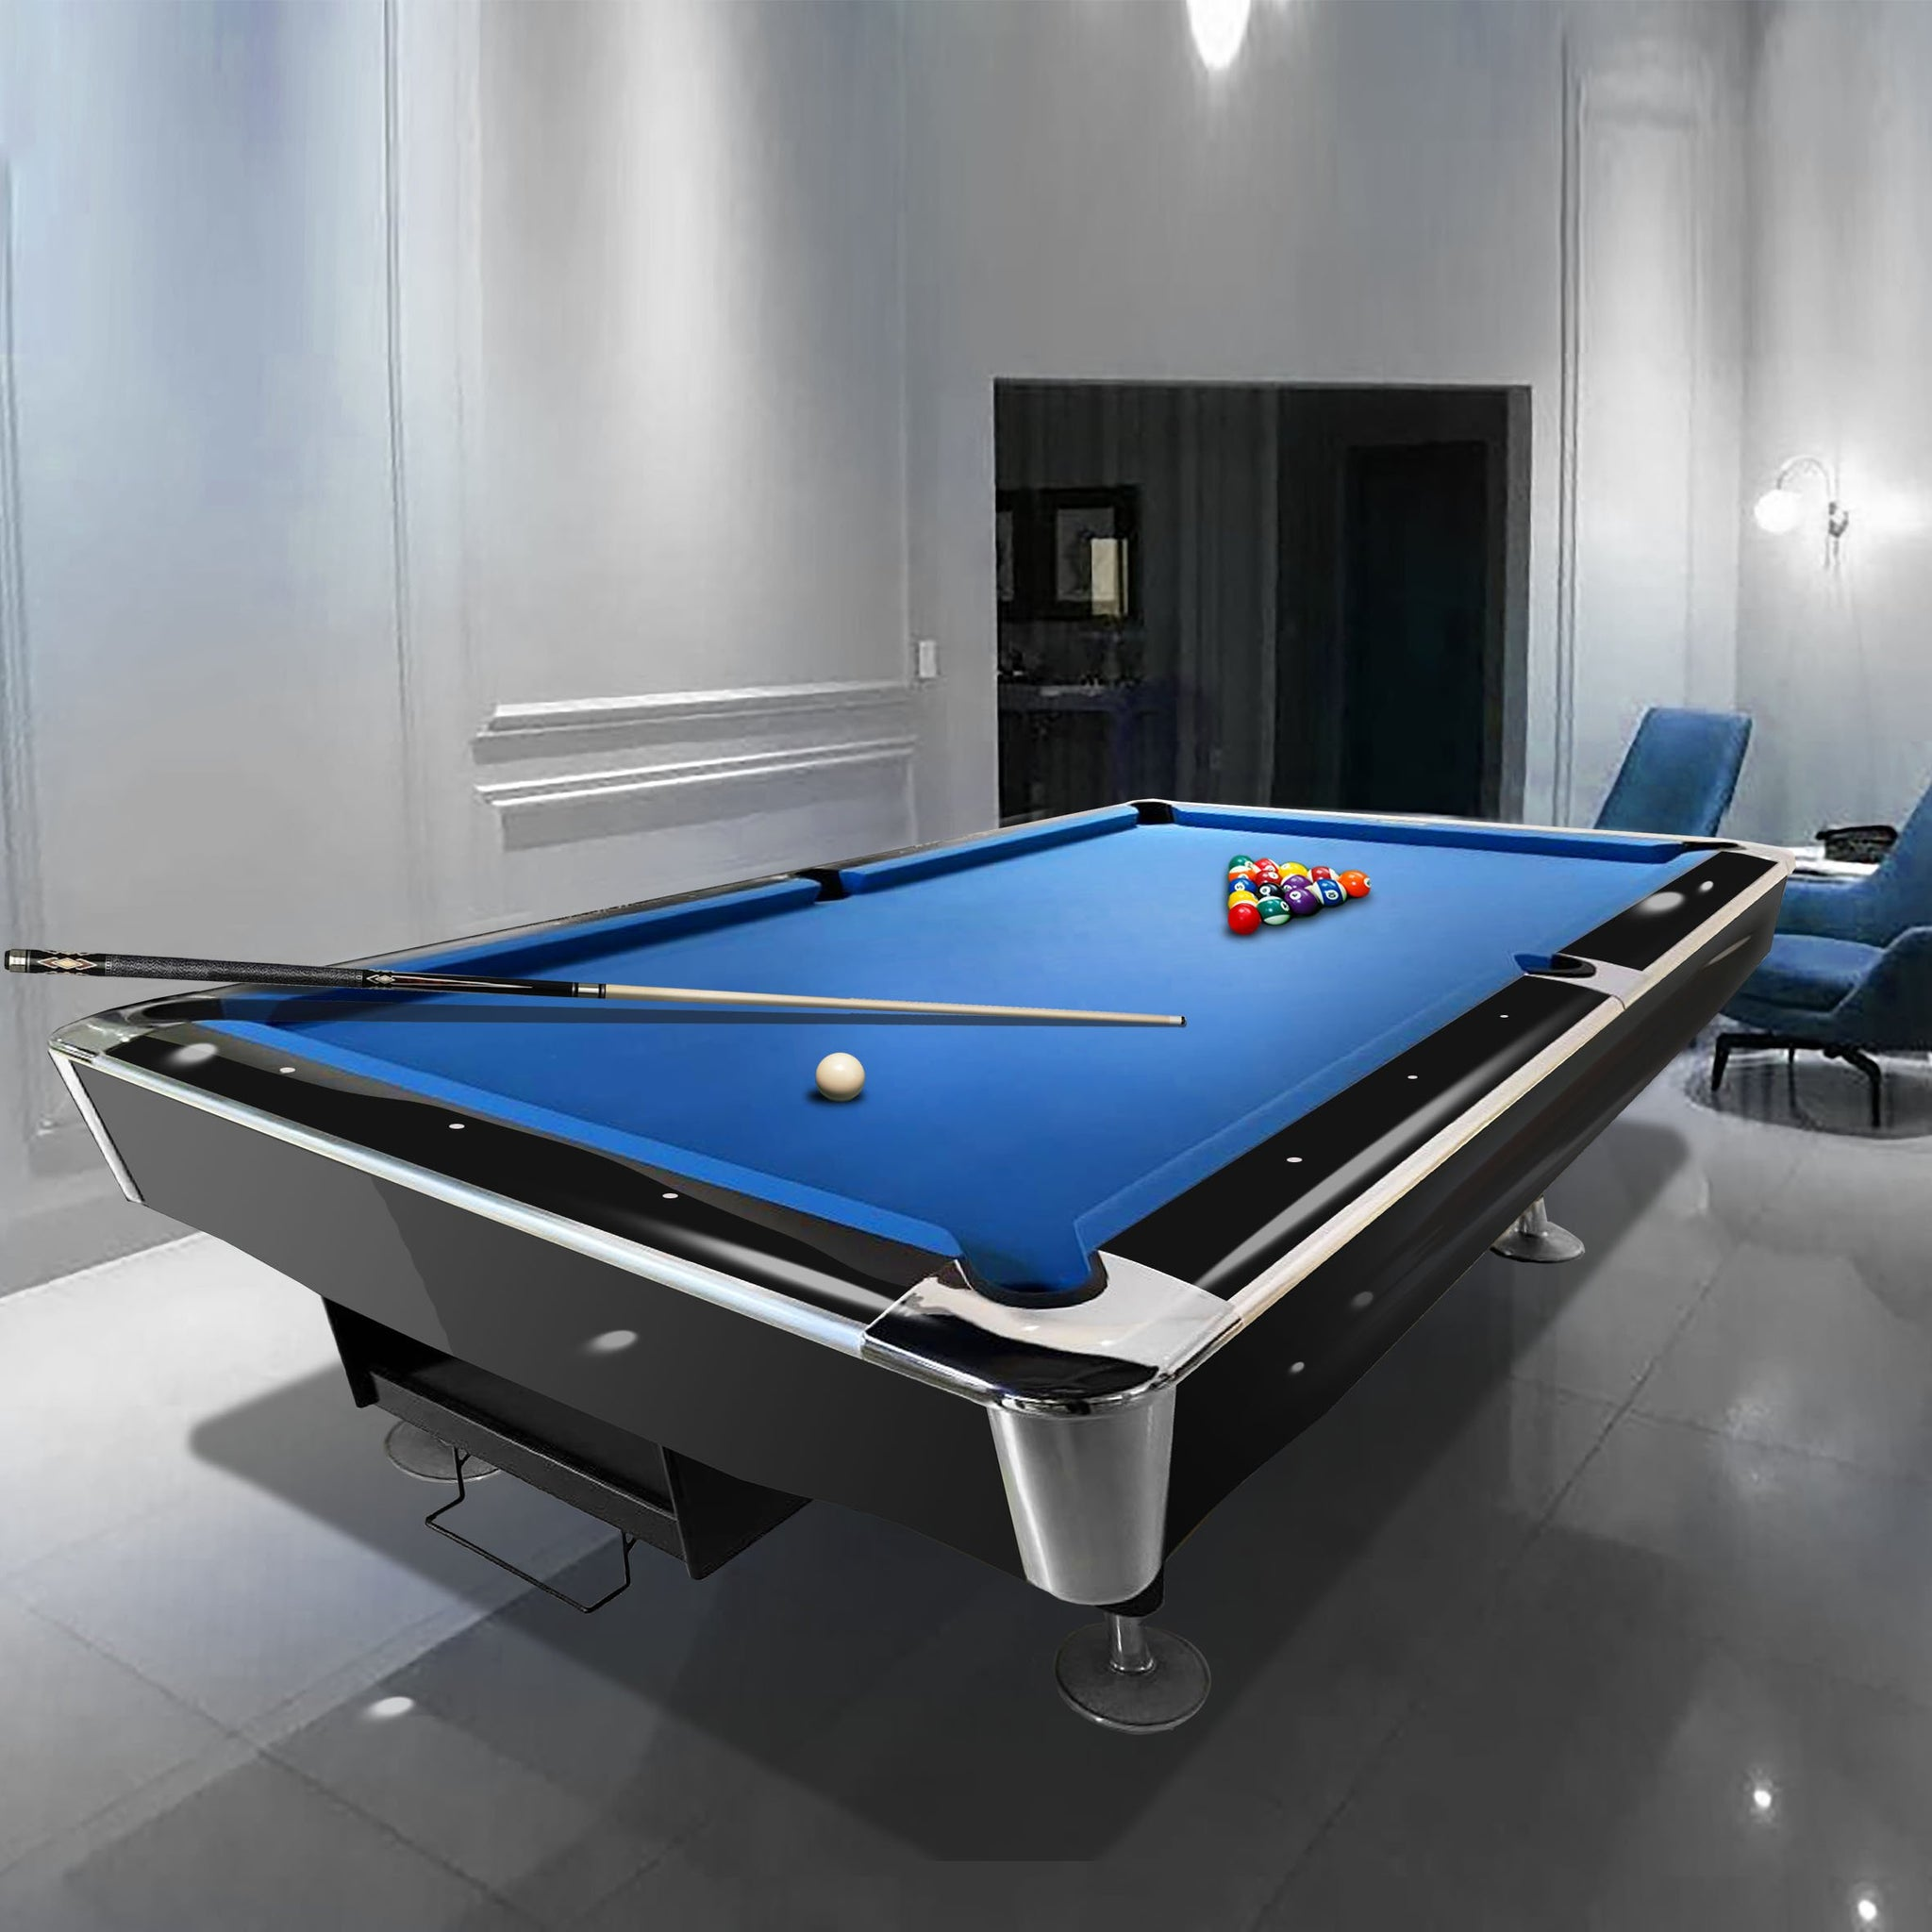 Tournament Professional 8ft American Pool Table Black Gloss Finish